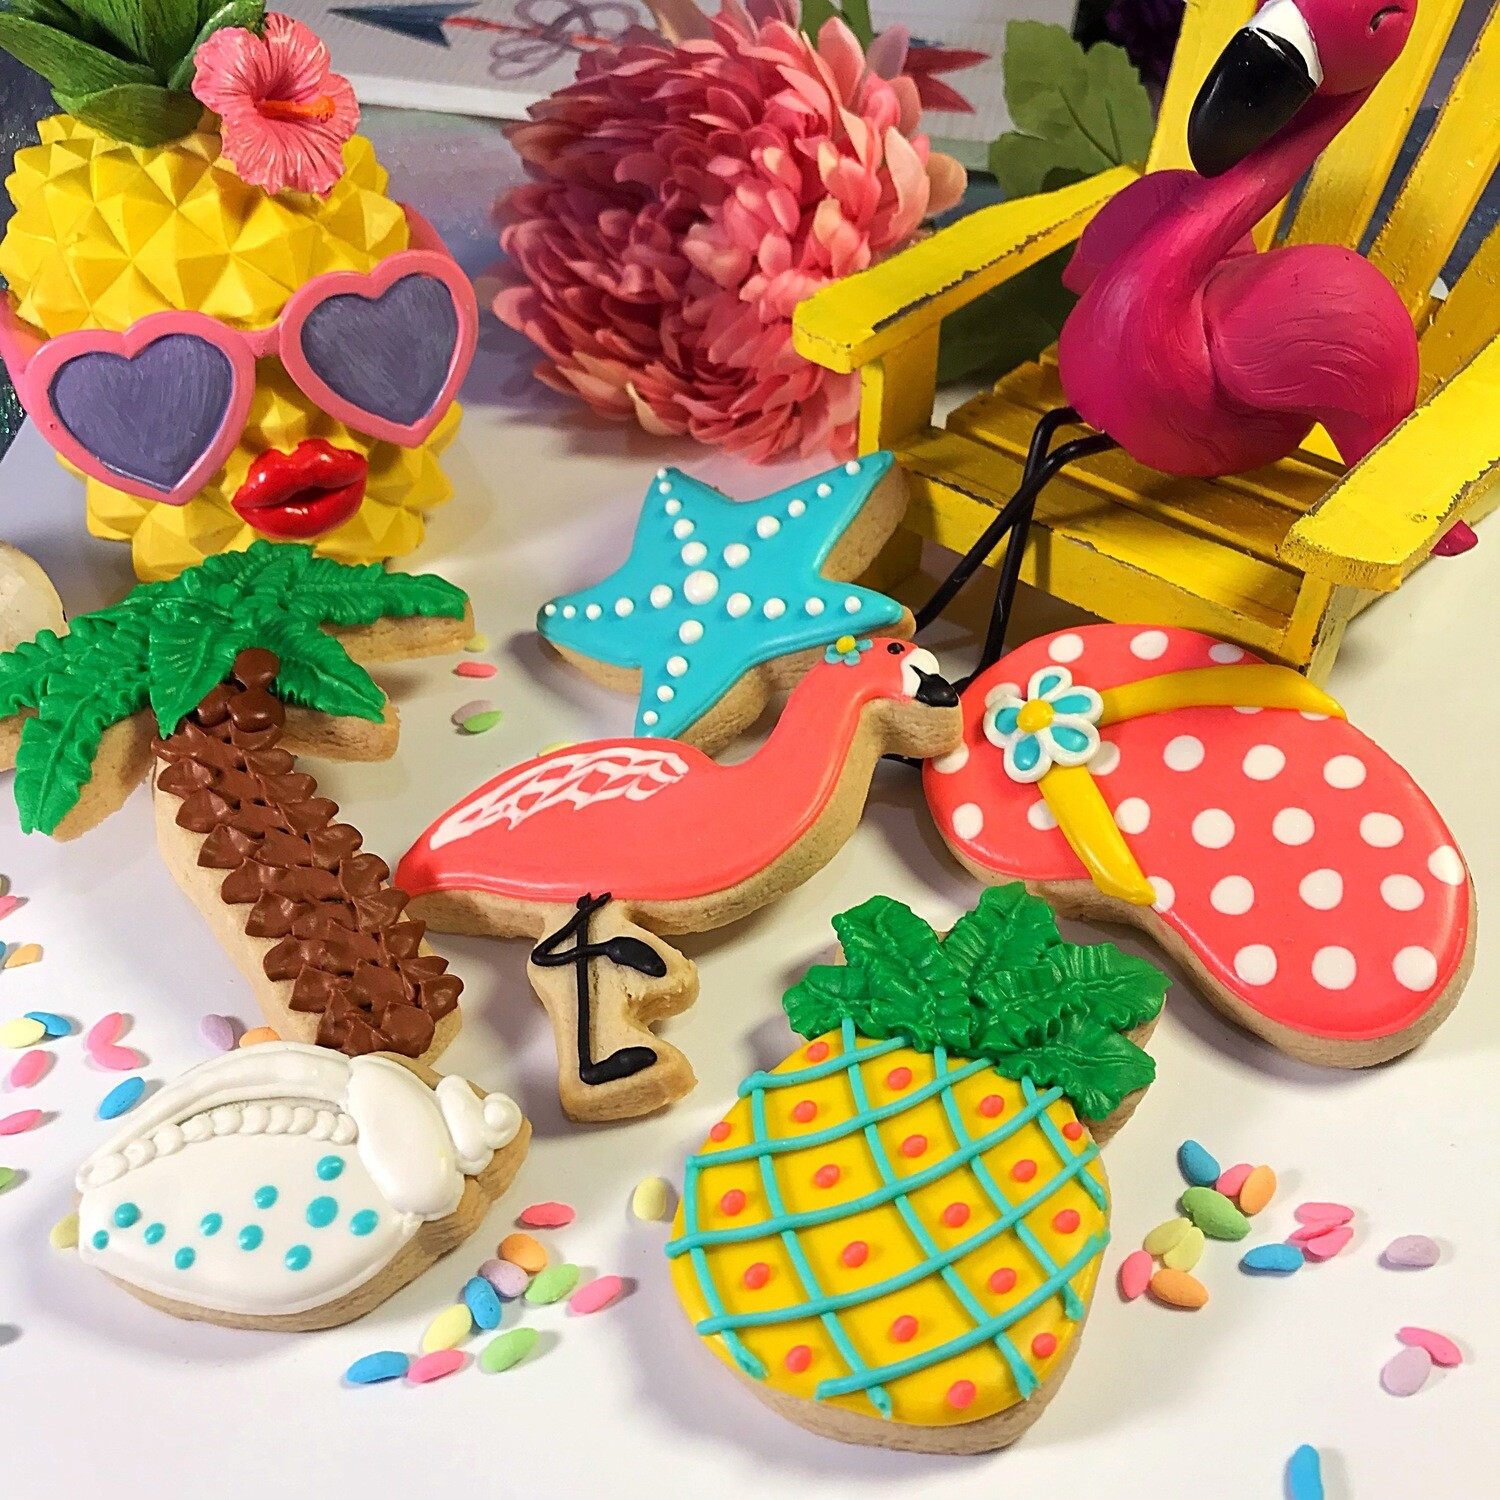 SUMMER TIME Decorating Workshop - SUNDAY, JUNE 23, 2019 at 3:00 p.m. (THE POTPOURRI HOUSE) - ADULT TICKET (Age 13+)